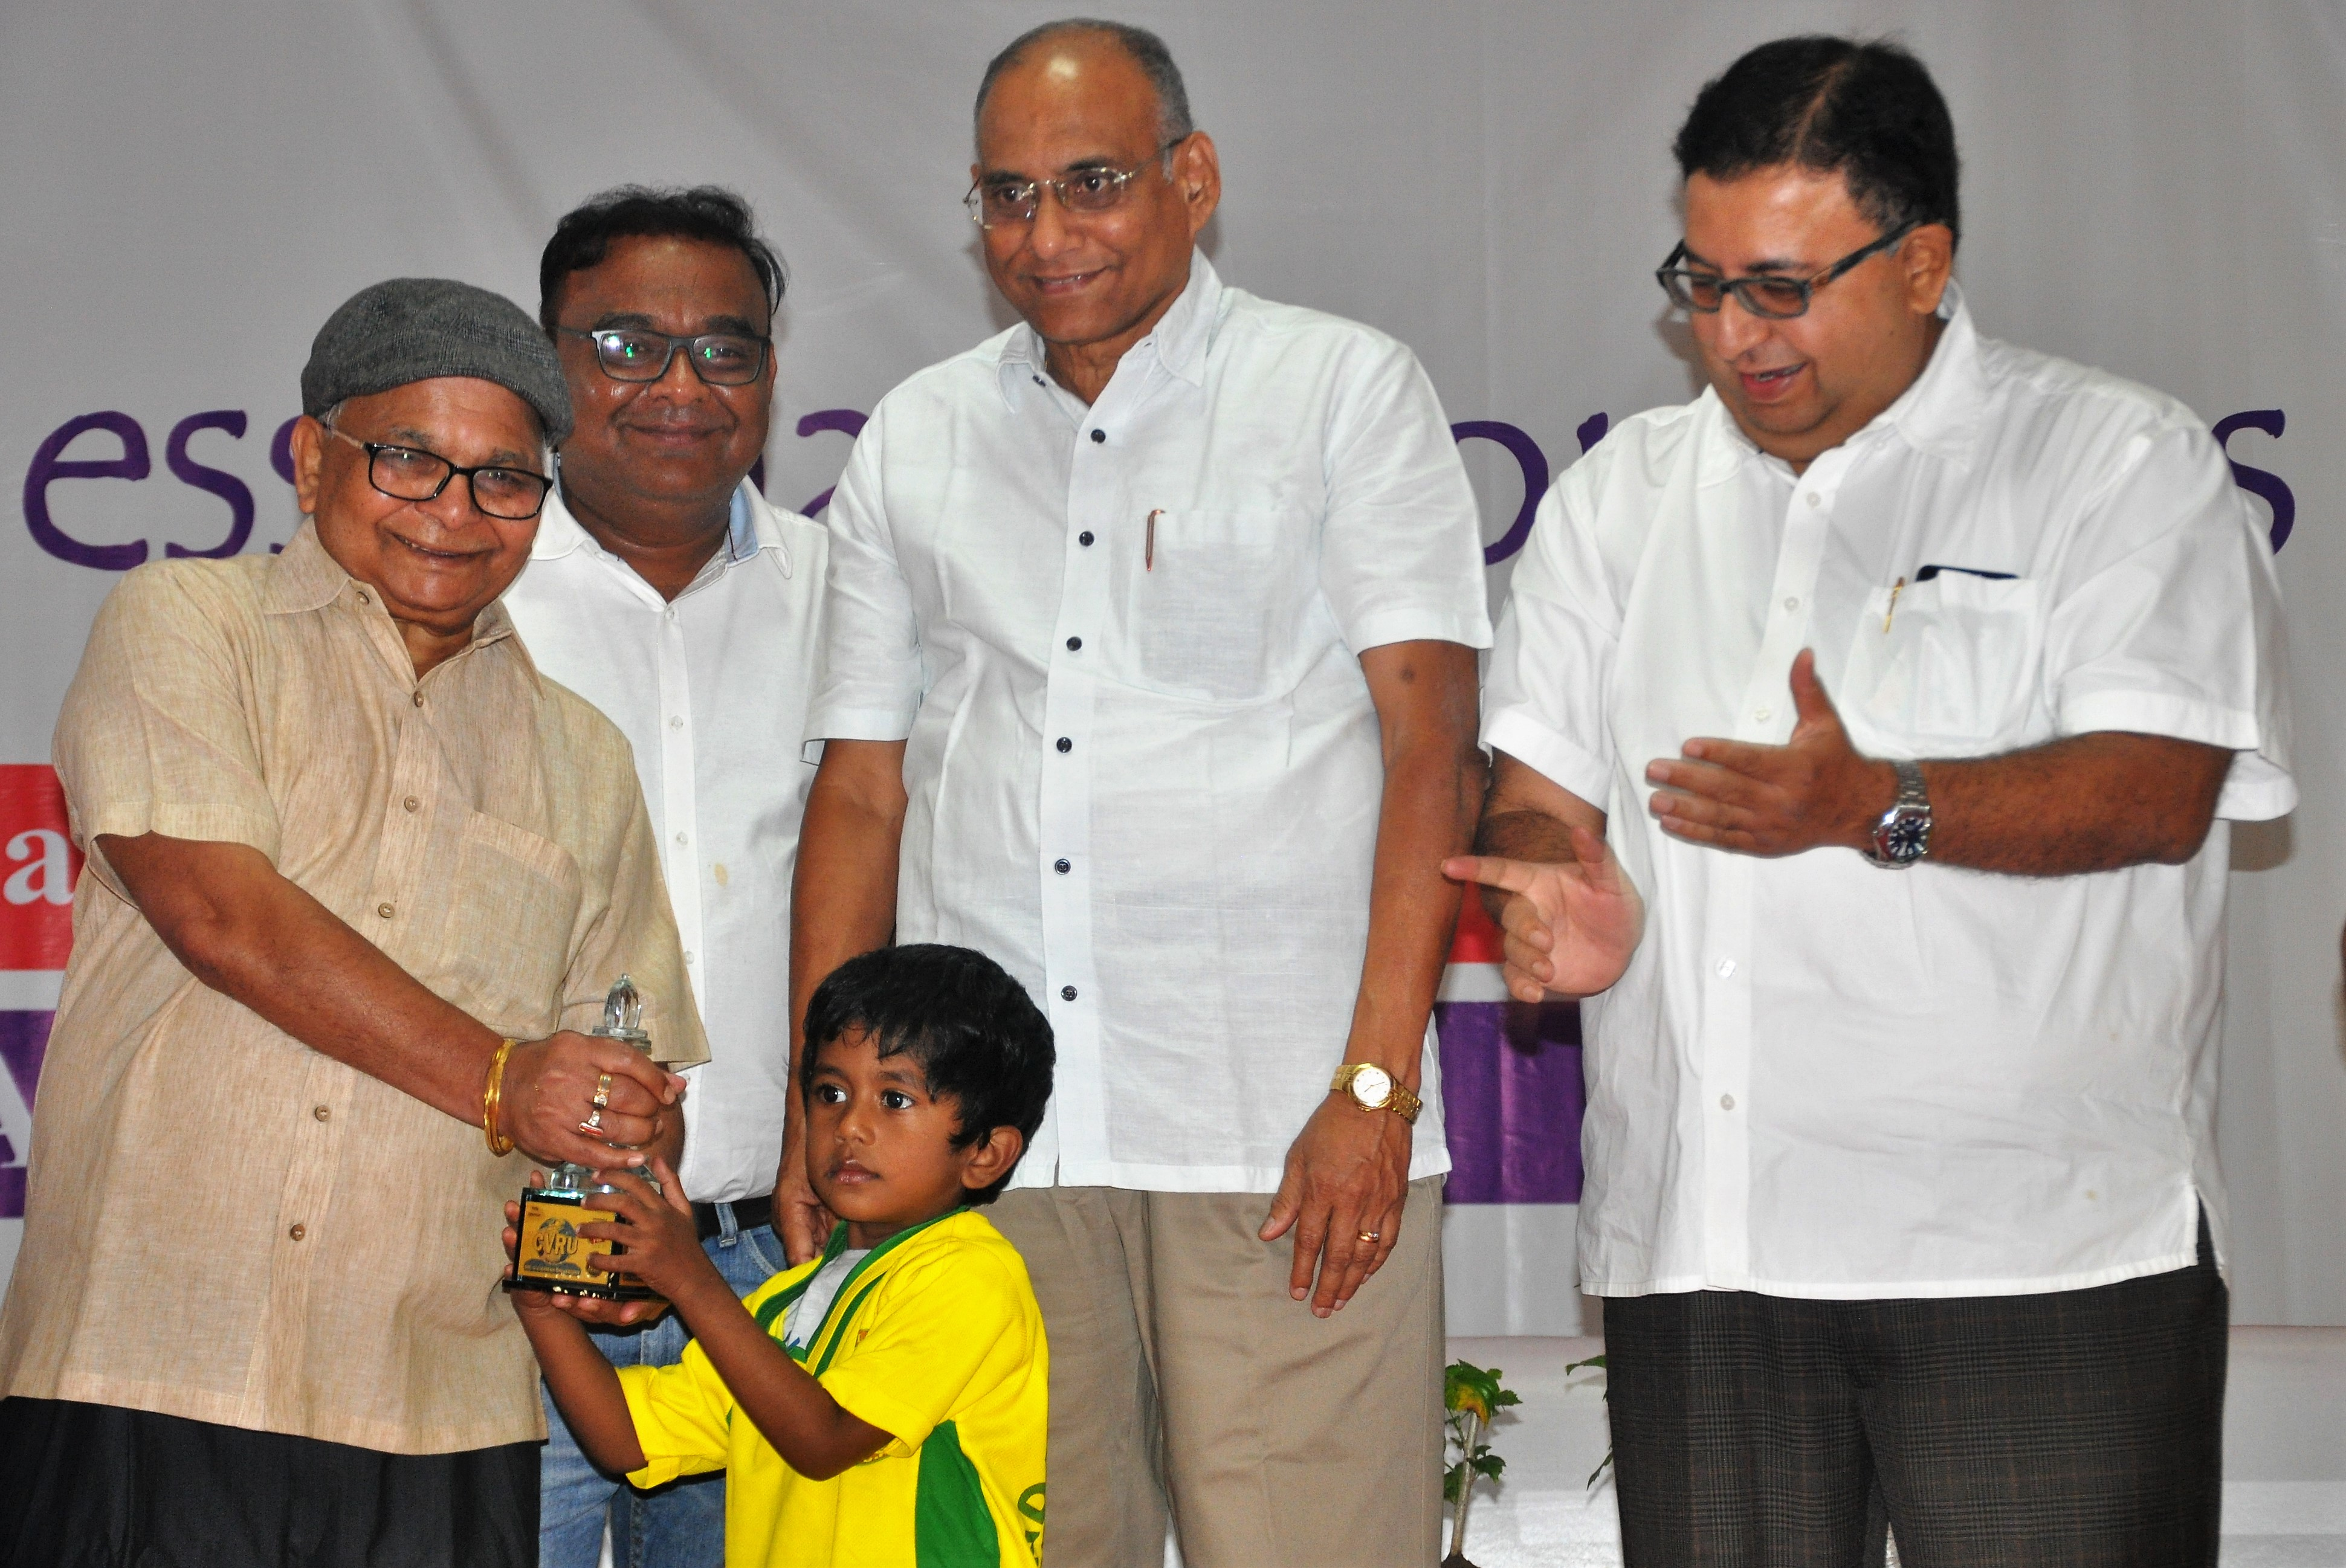 Youngest Player OPEN receiving trophy